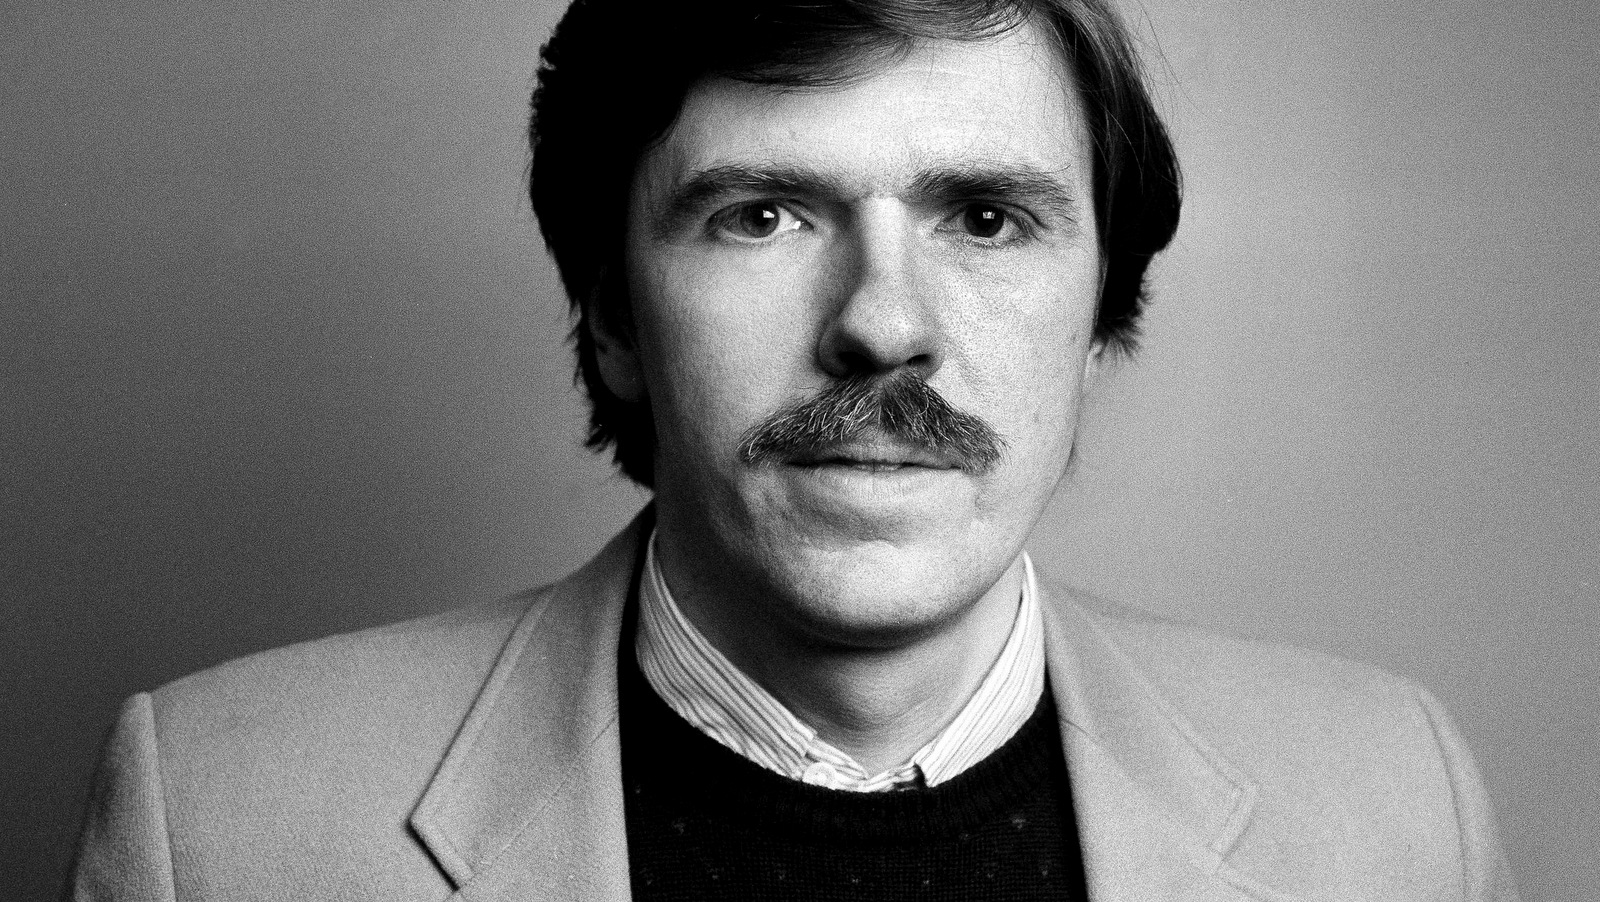 A Tribute to American Patriot and Investigative Journalist Robert Parry